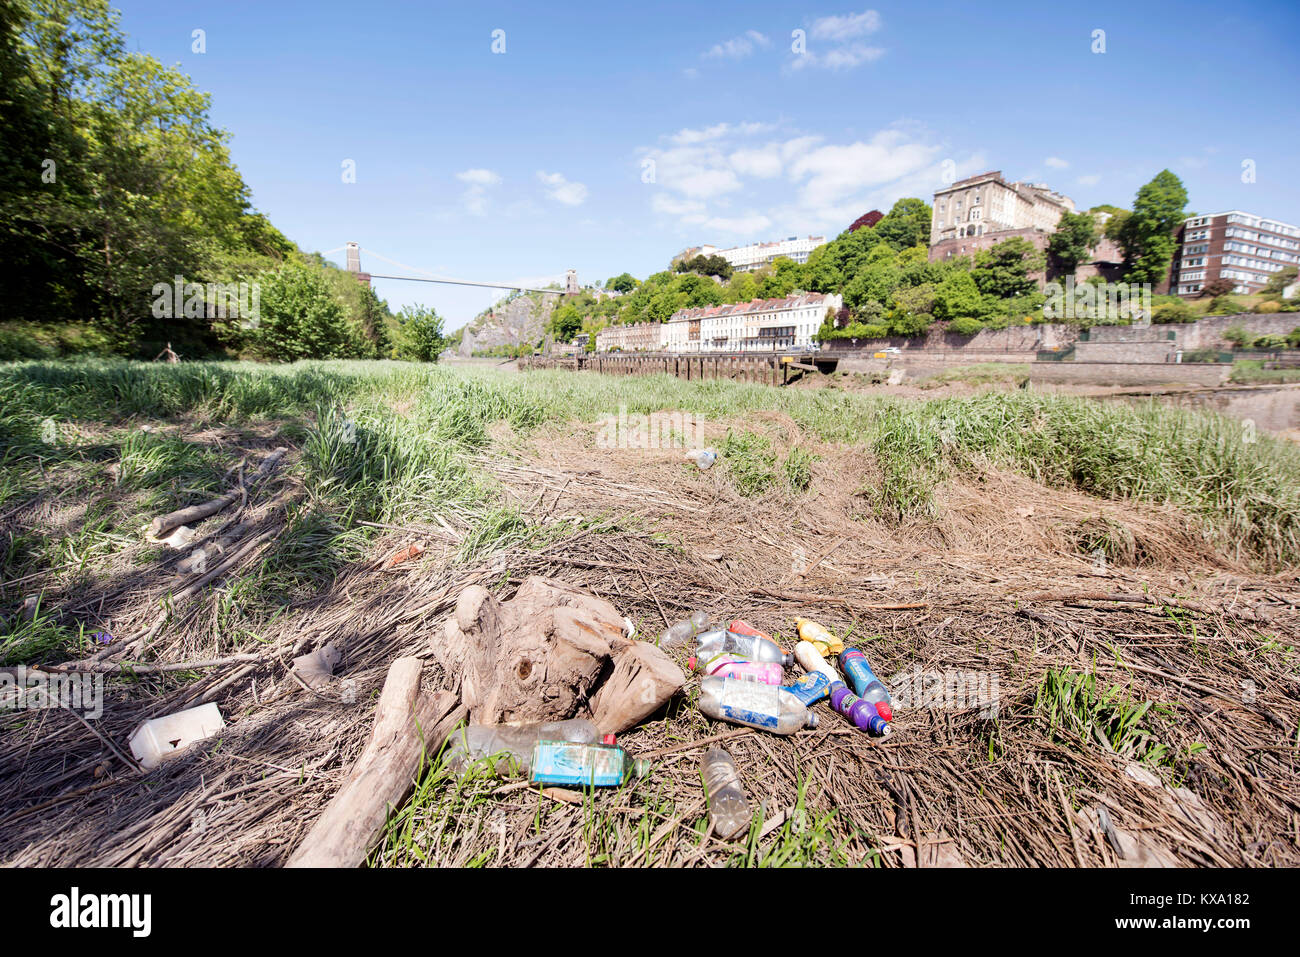 Re. 'City To Sea', a campaign to rid Bristol of plastic bottle waste - waste bottles on the banks of the Avon in - Stock Image